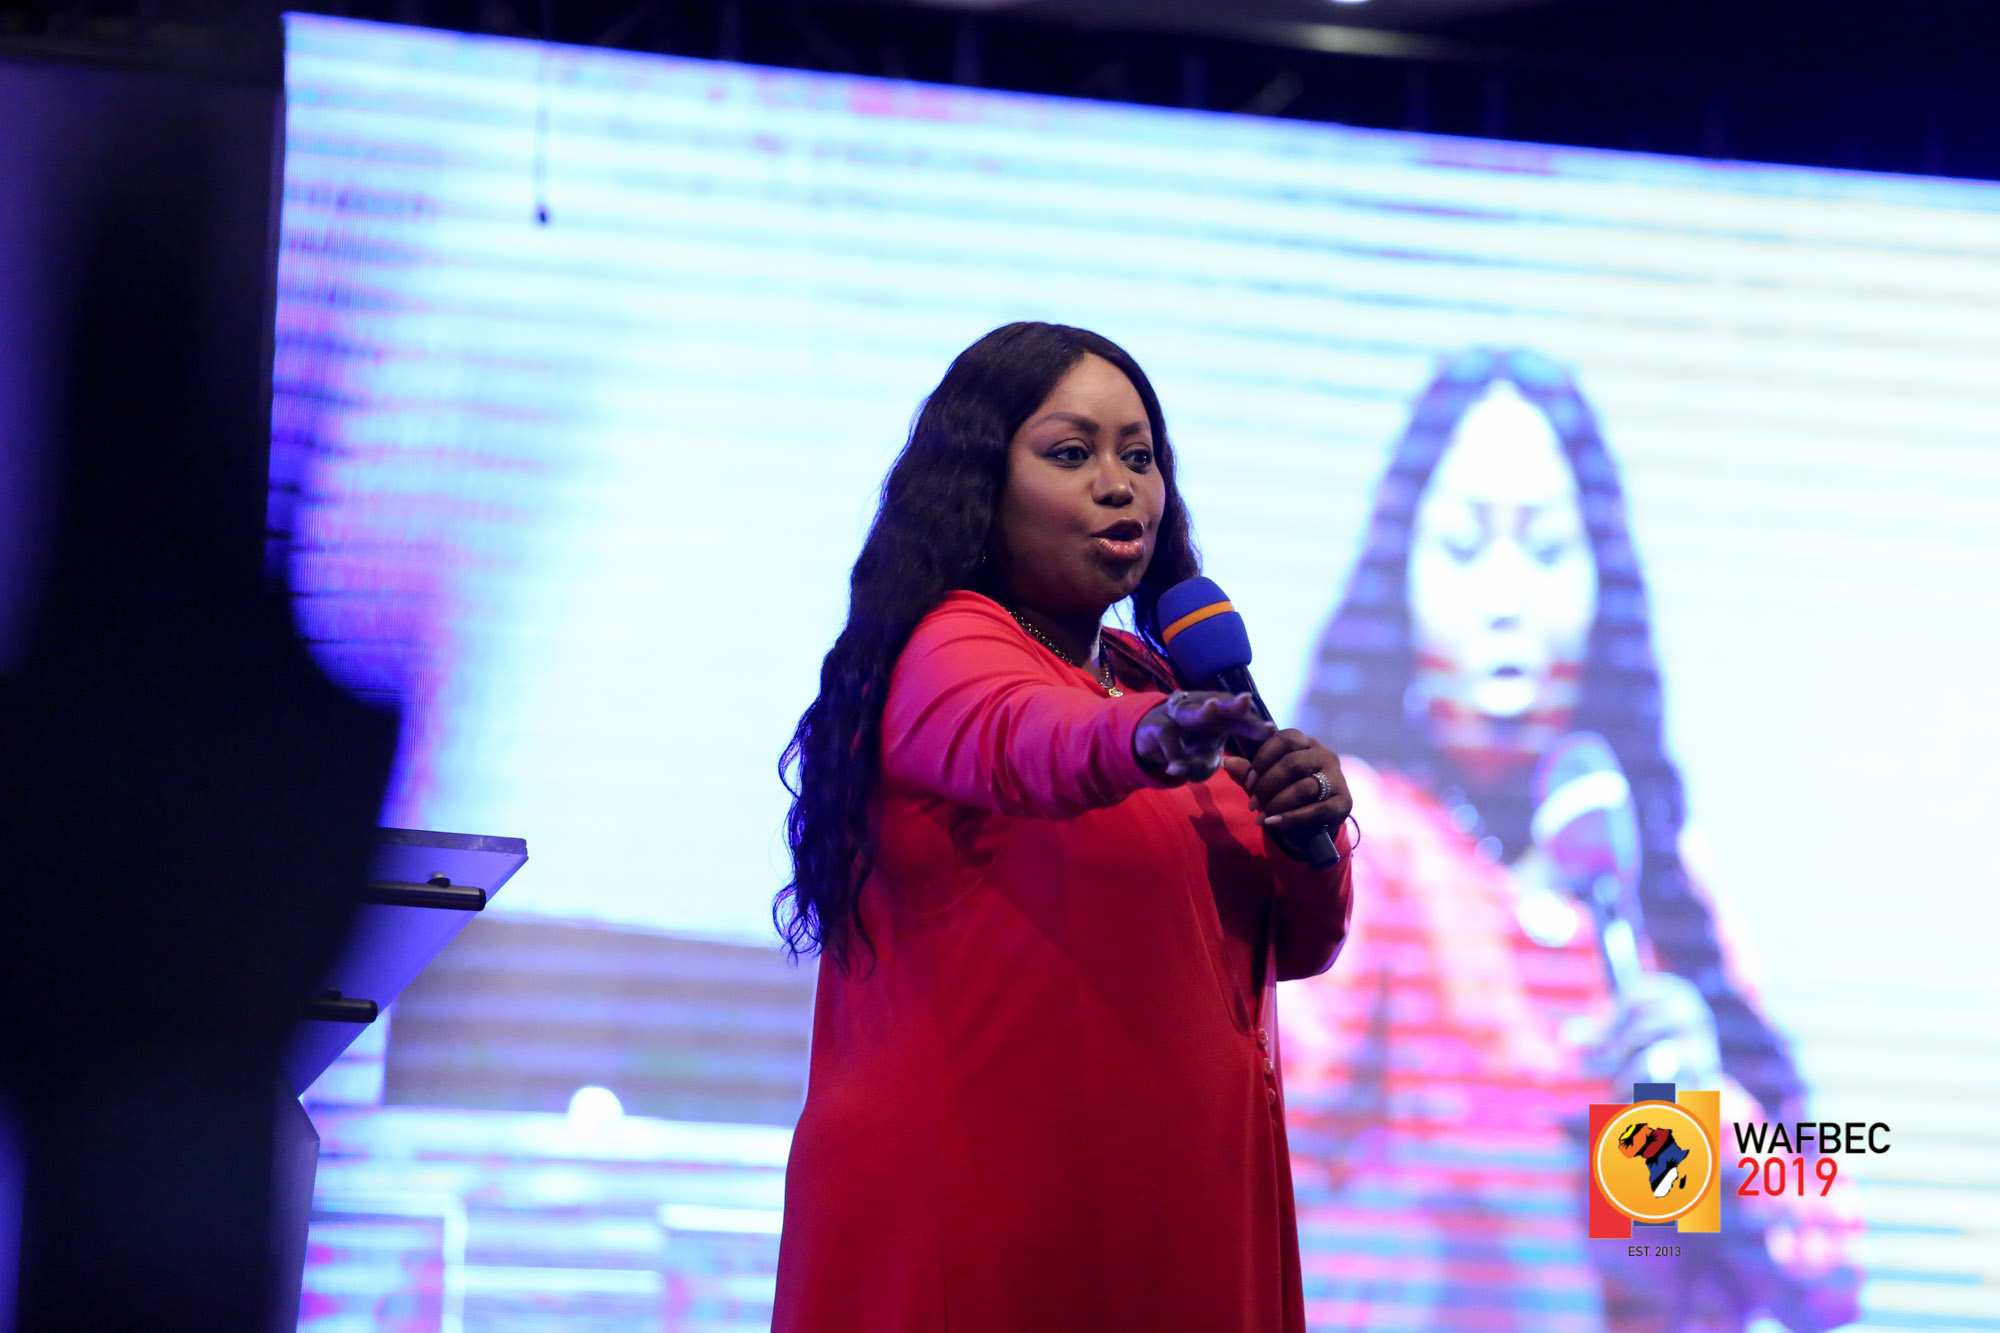 WAFBEC 2019 (Day 4) – Morning Session 1 with Dr Cindy Trimm